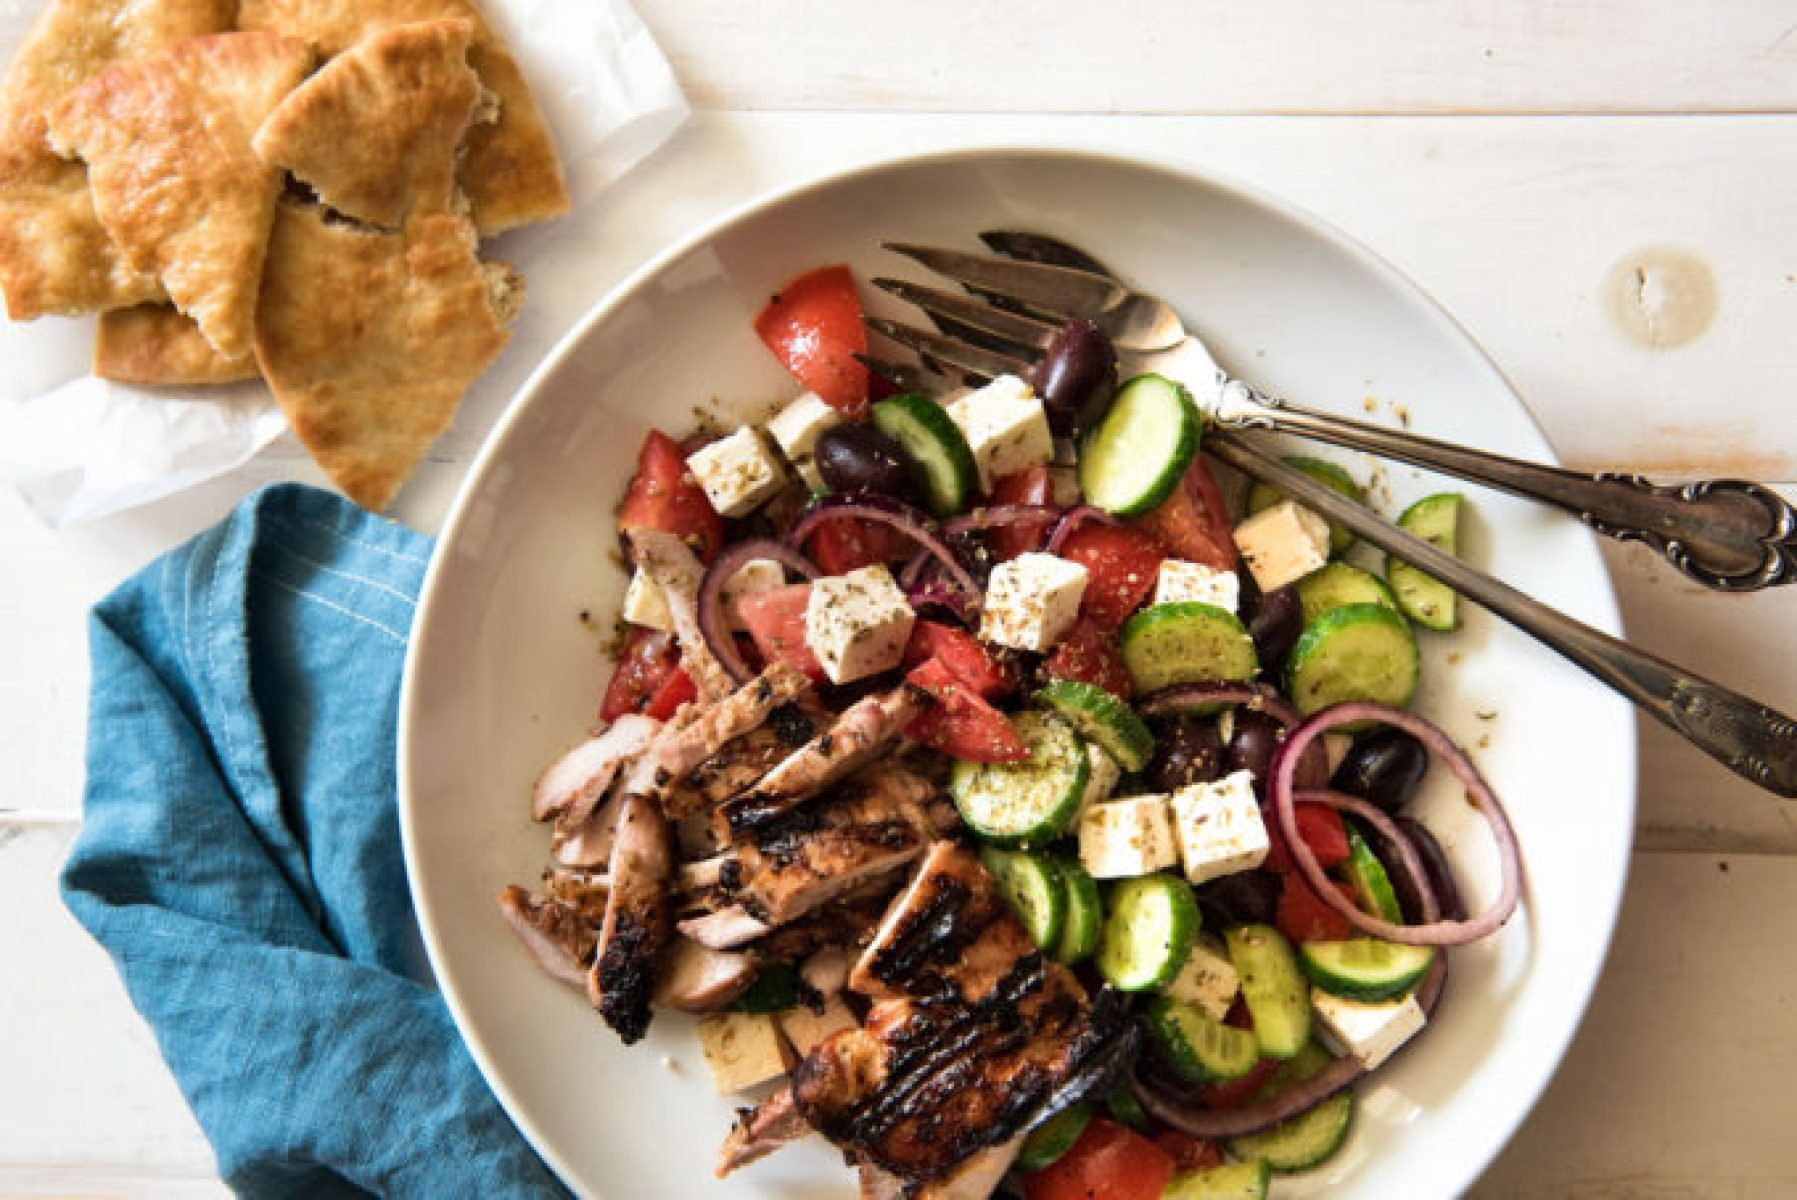 Greek Salad, a classic greek salad that is easy to make